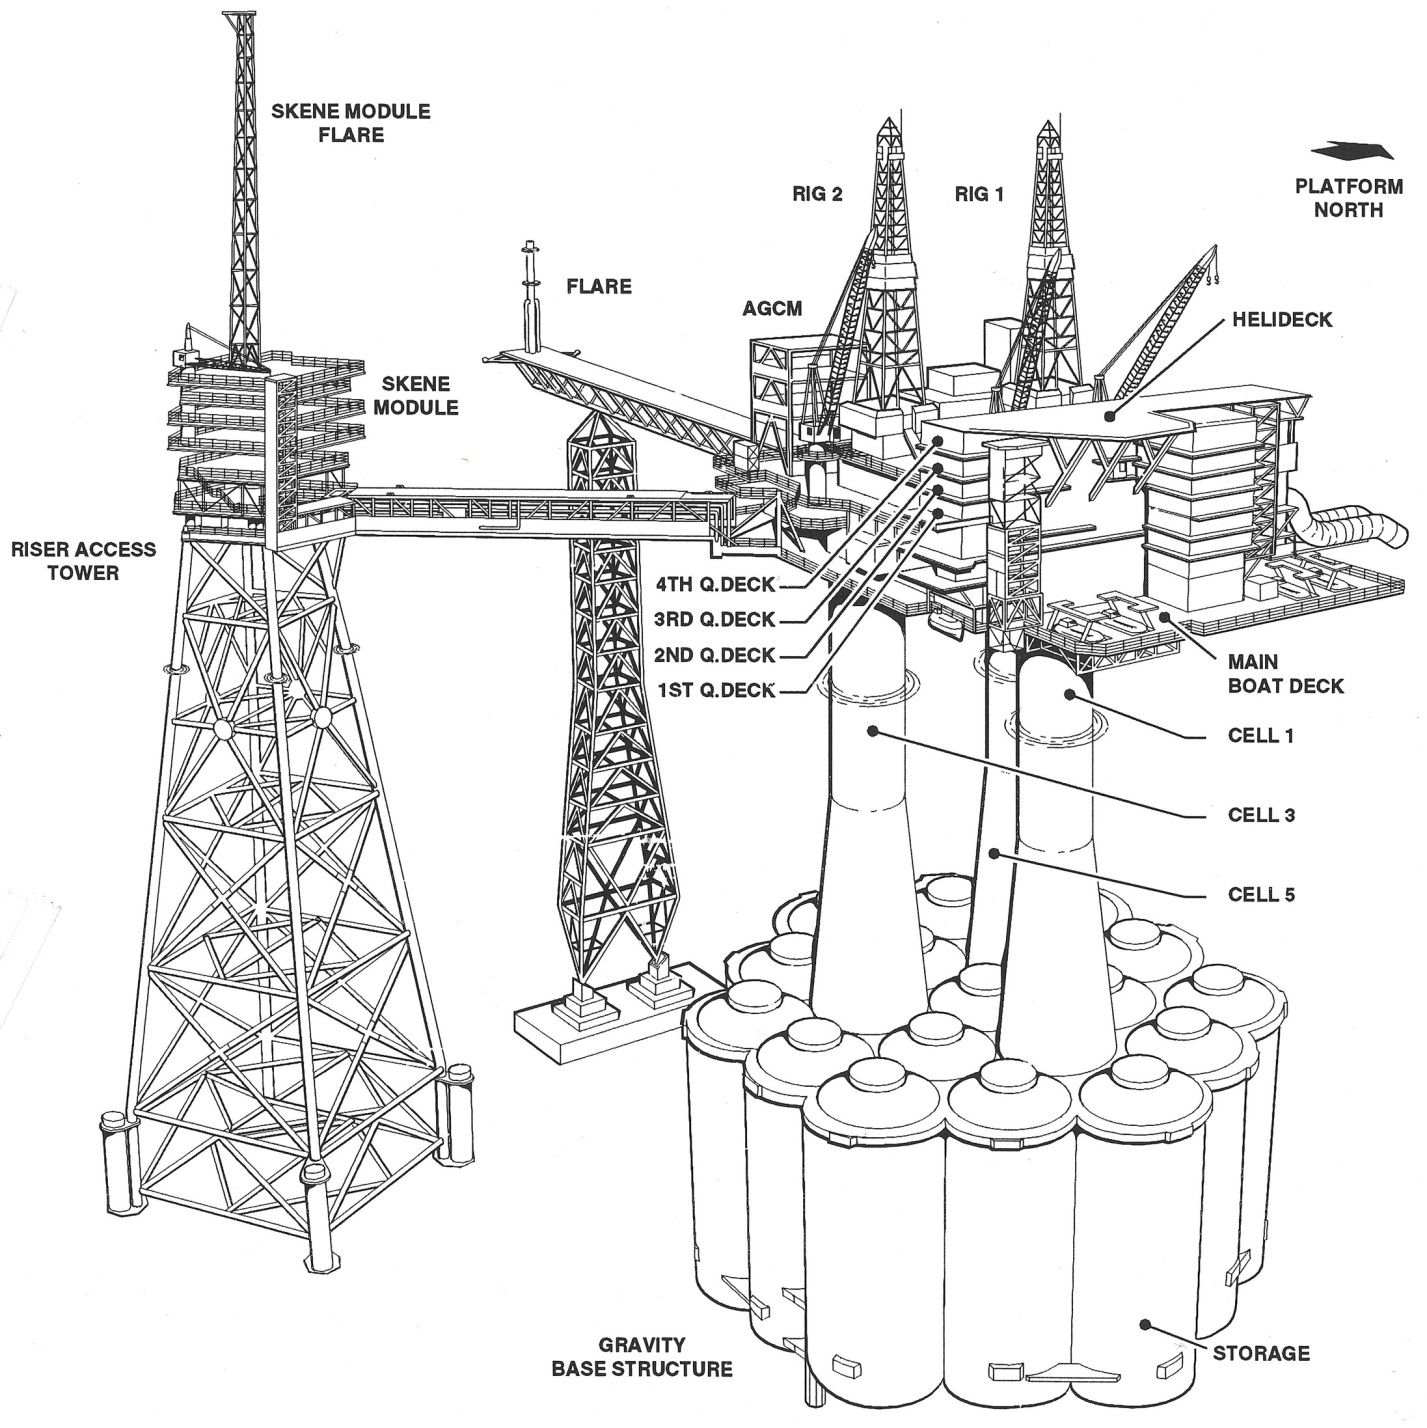 Oil Well Rod Diagram Wire Data Schema Blogspotcom 2012 04 Howtomakelongdurationtimercircuithtml Rig Deck Free Vehicle Wiring Diagrams Annulus Diagam